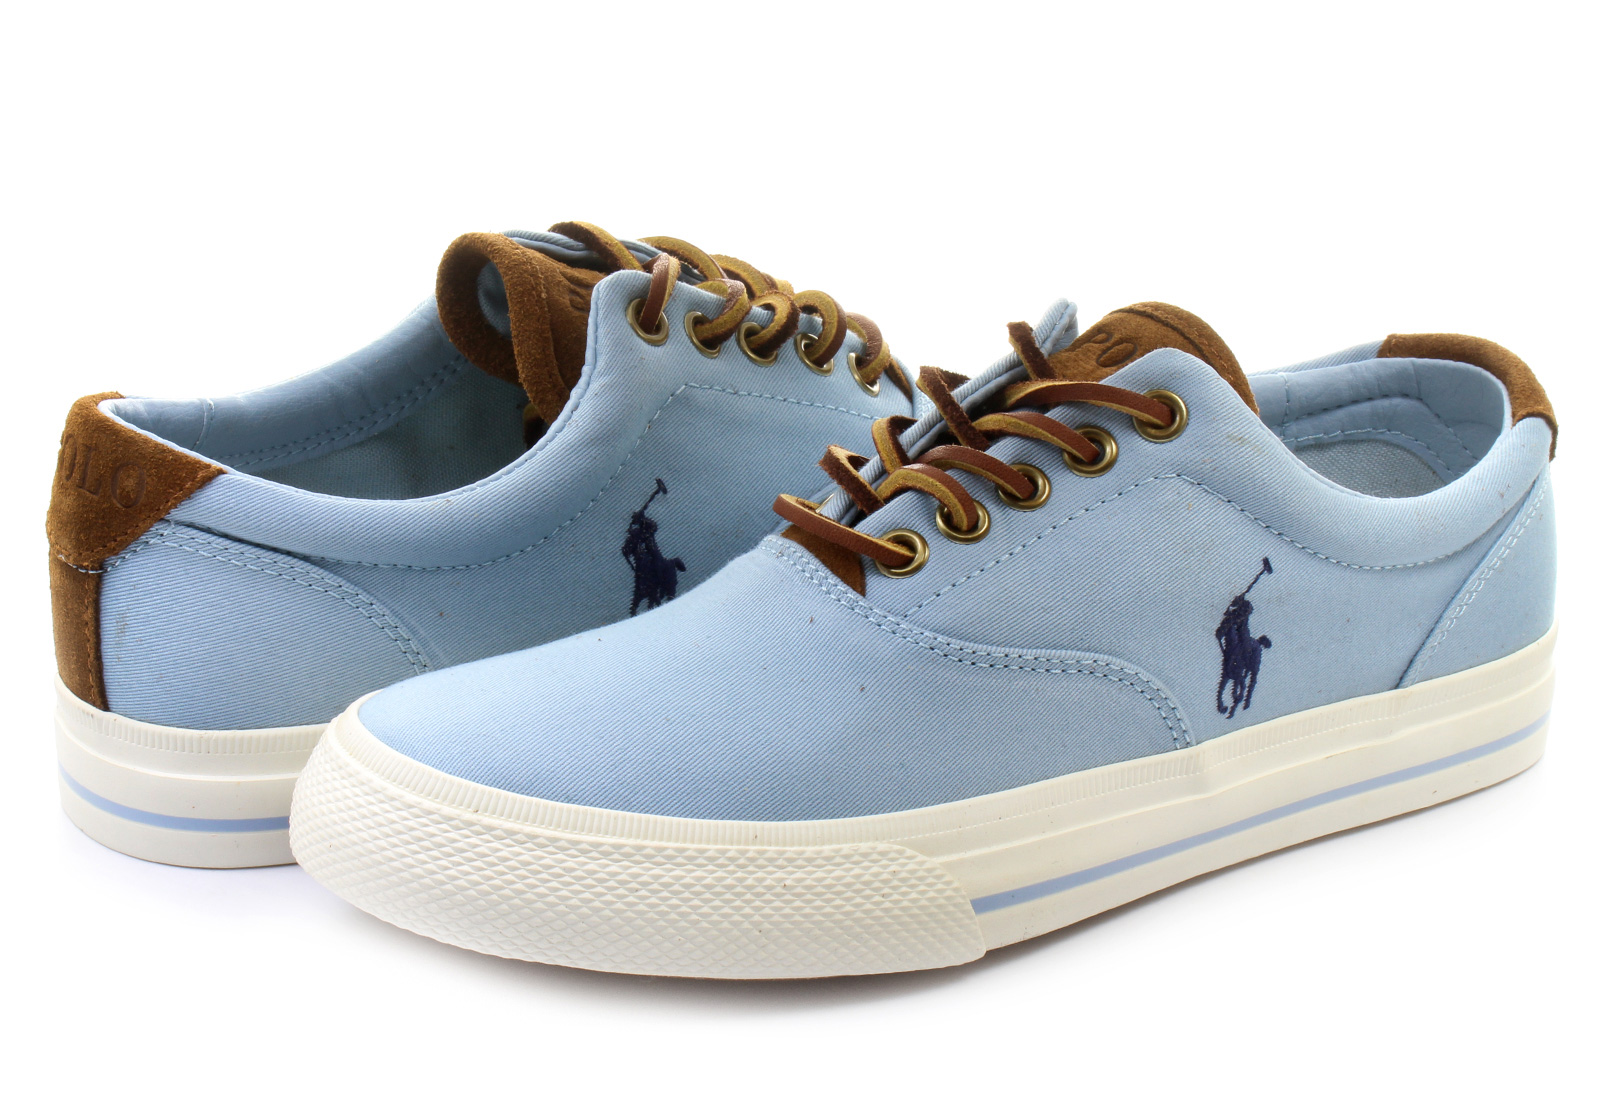 polo ralph lauren shoes vaughn 2037 b w49qe online shop for sneakers shoes and boots. Black Bedroom Furniture Sets. Home Design Ideas